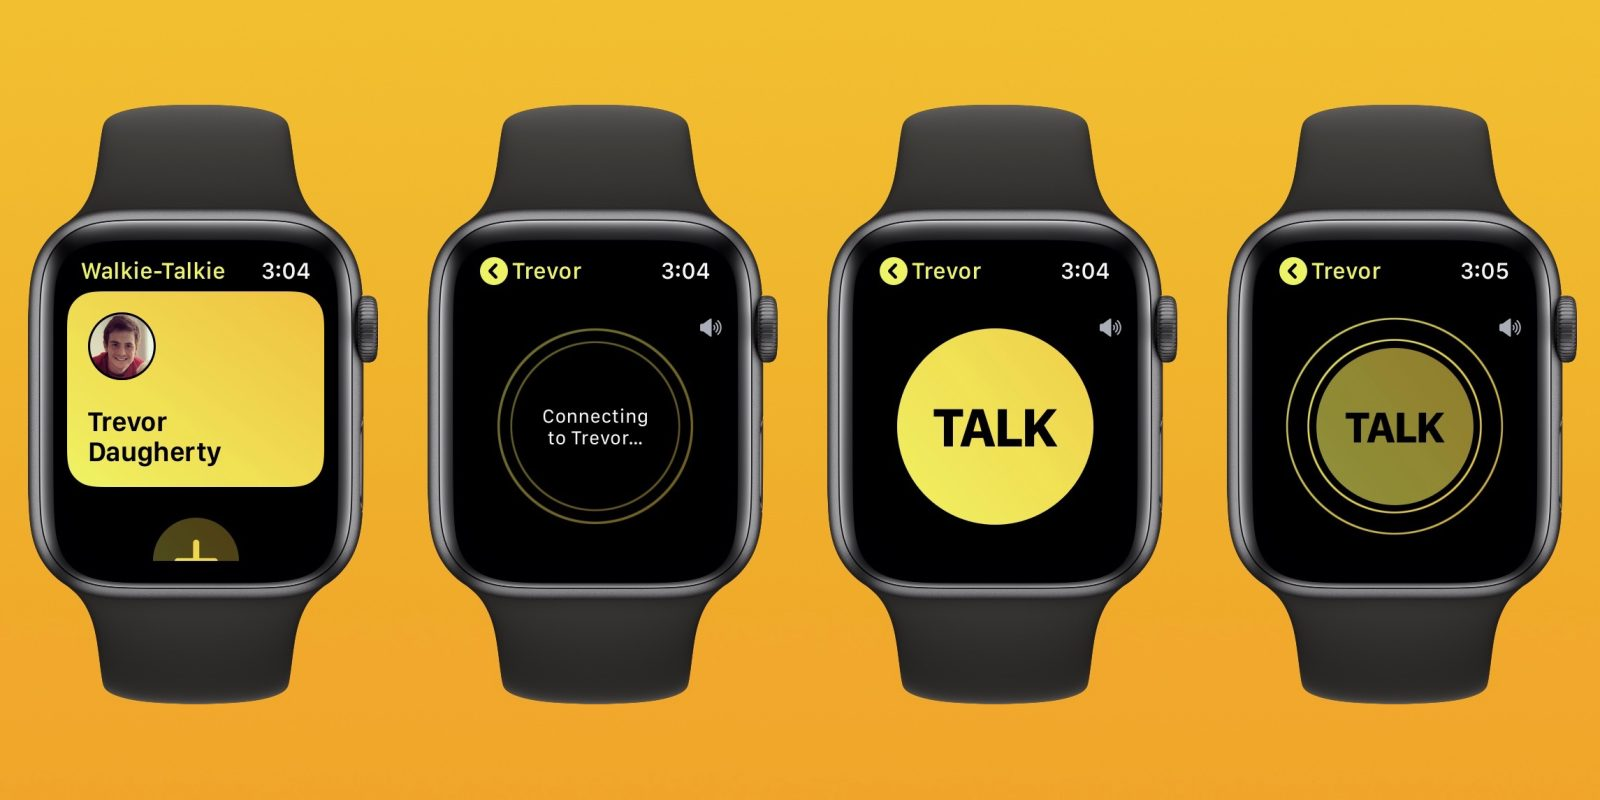 Apple disables Walkie-Talkie app due to vulnerability